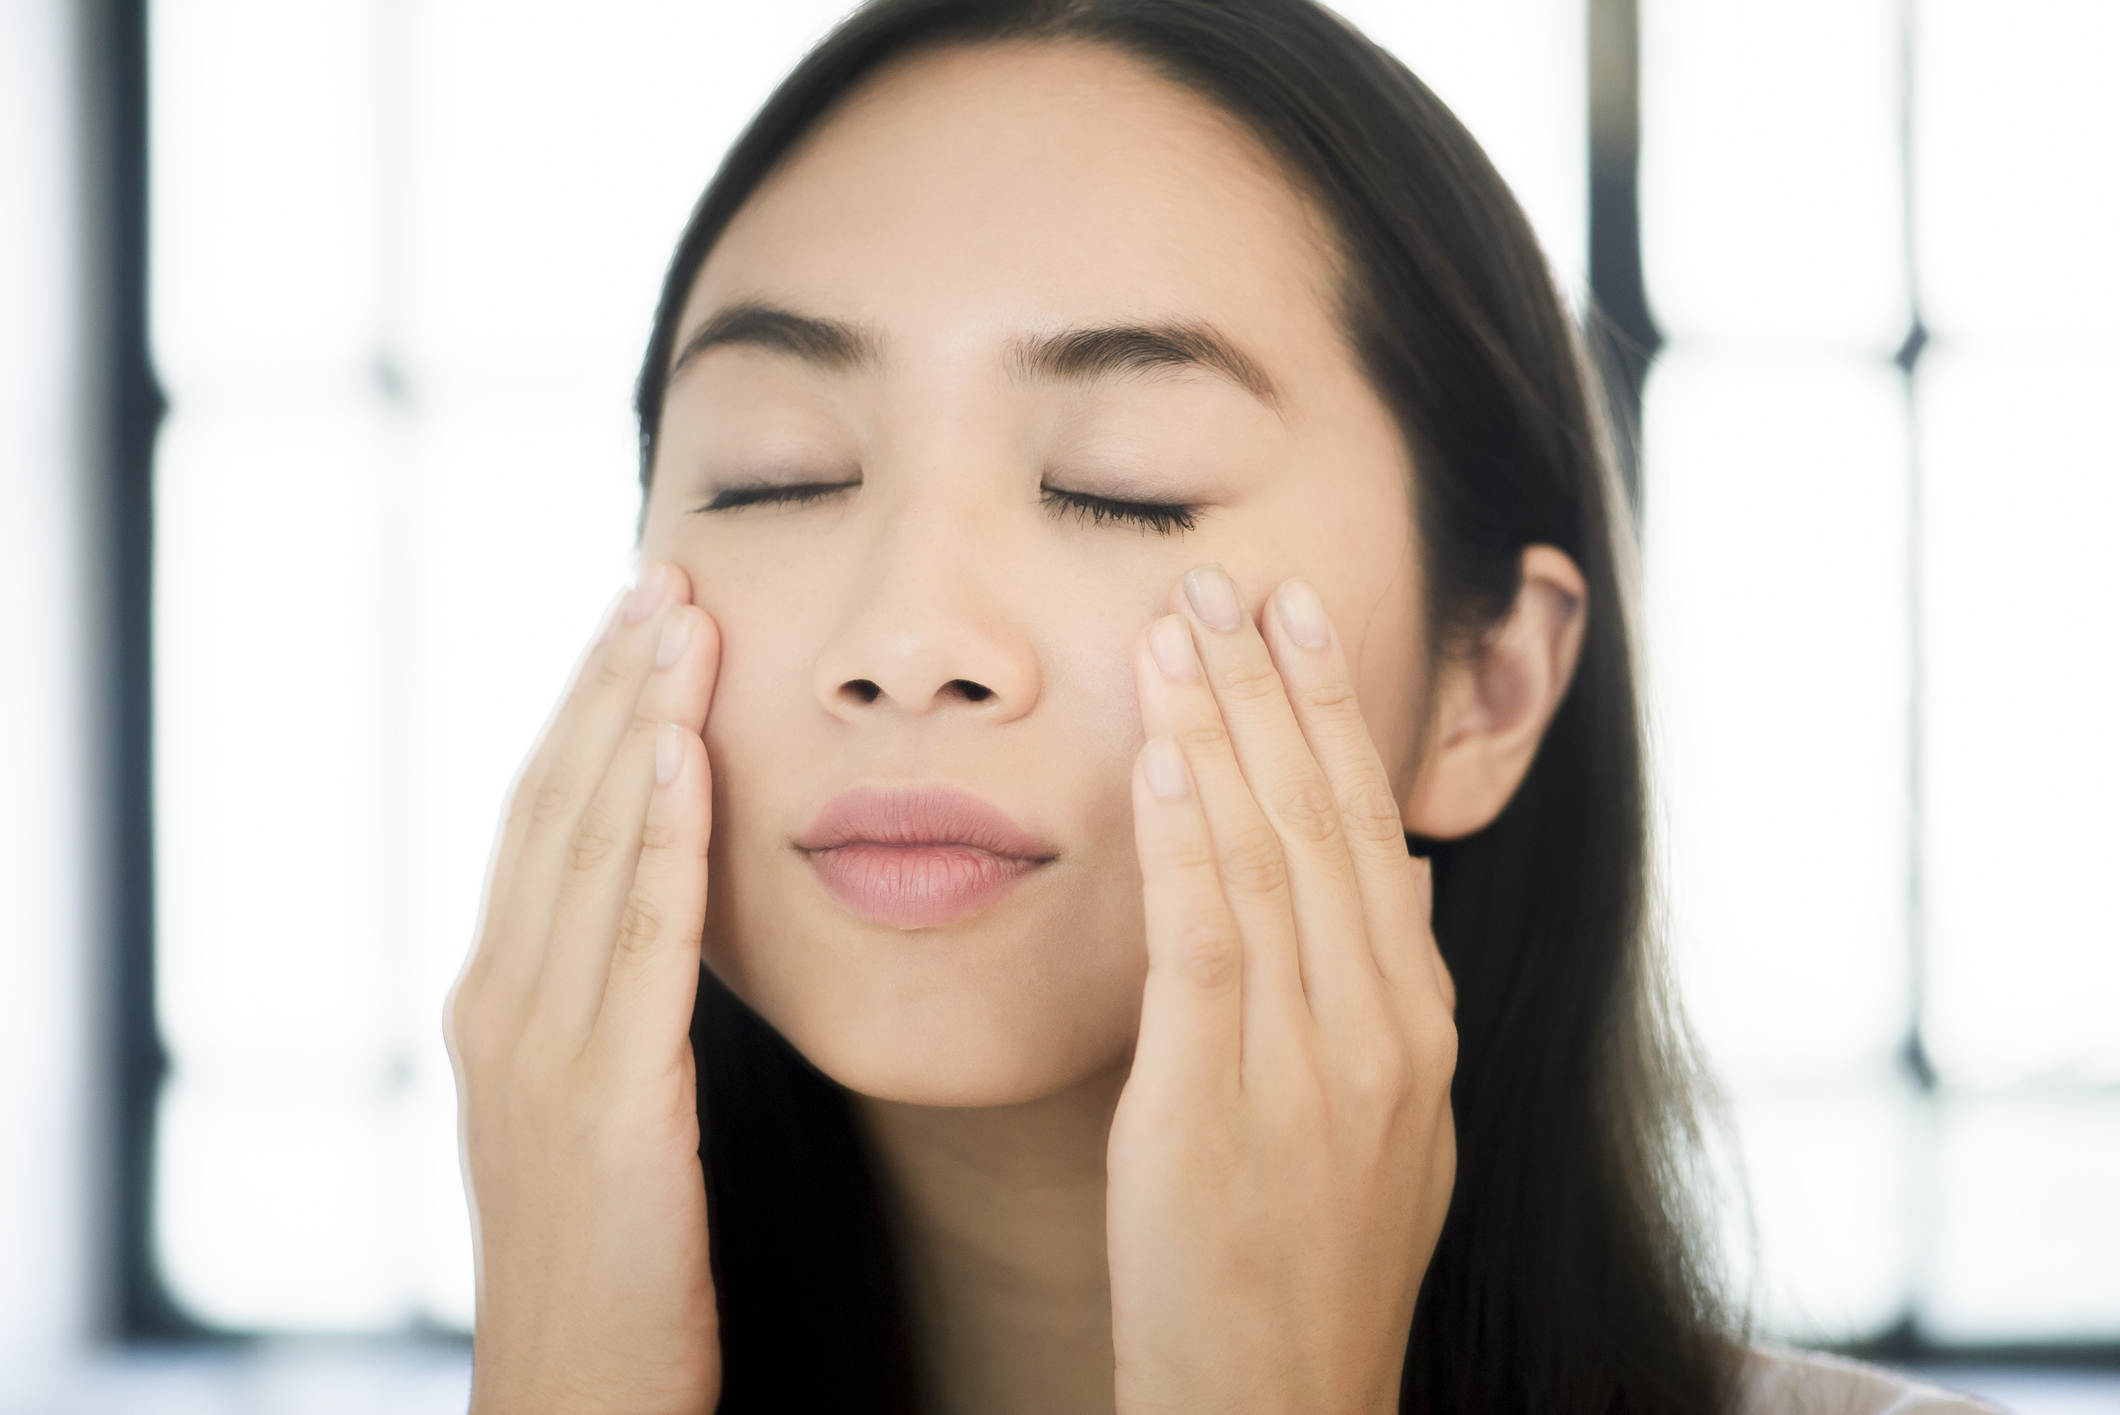 Anti-aging Face Massages and Exercises